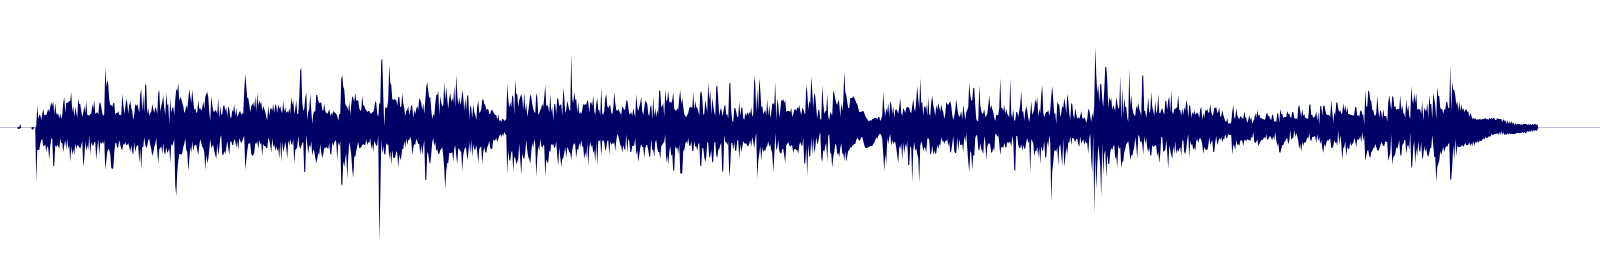 waveform of track #116013